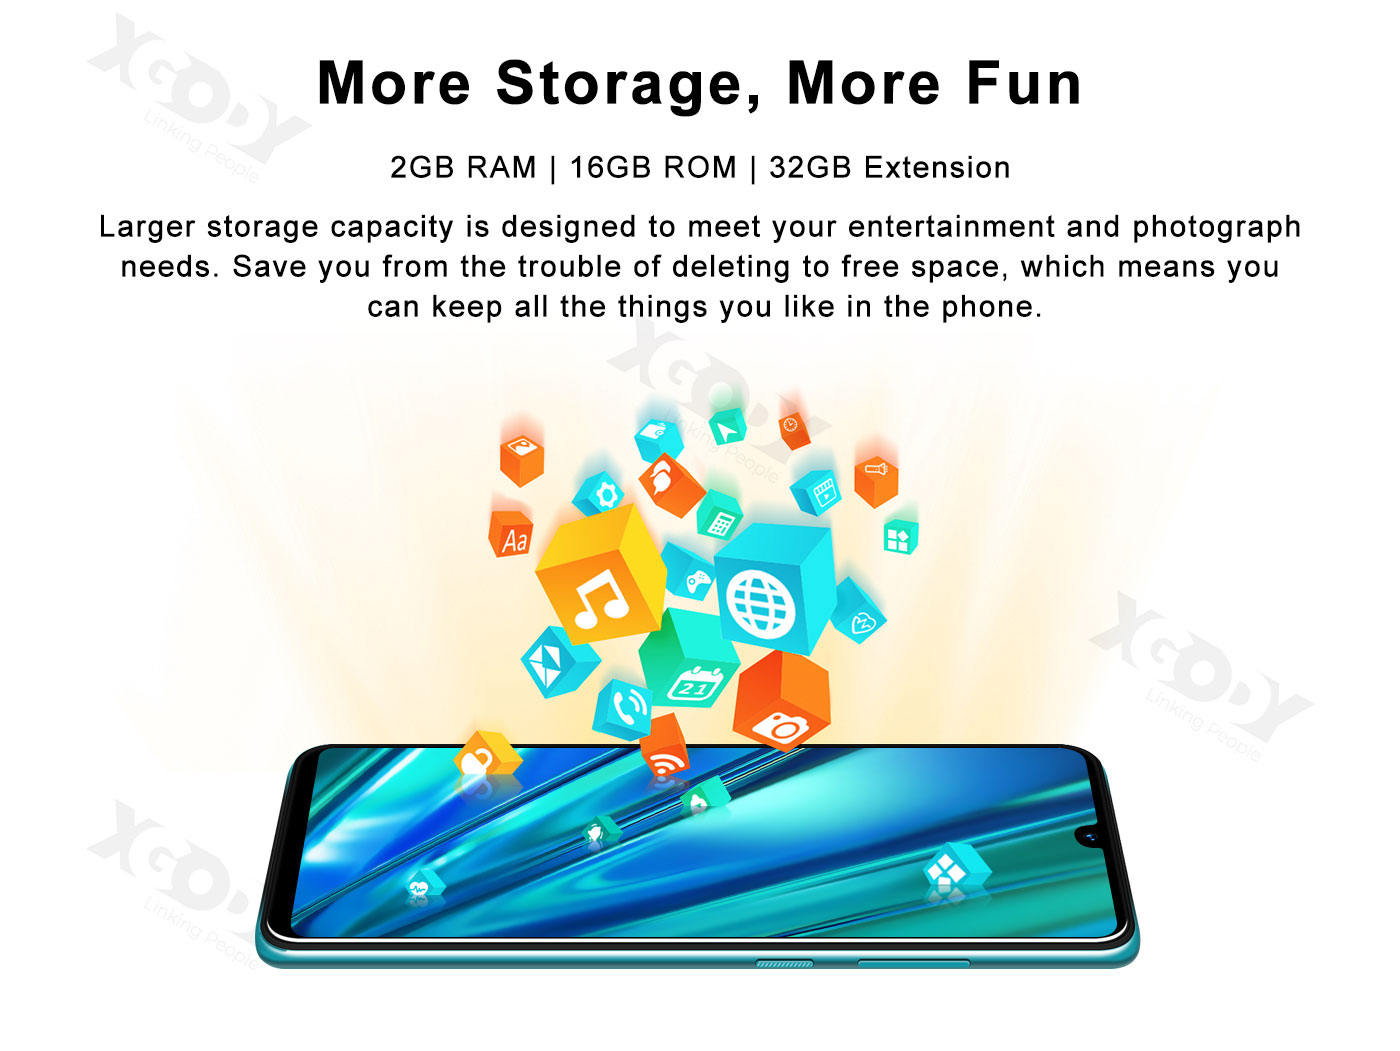 XGODY 9T Pro Android Smartphone with 16GB